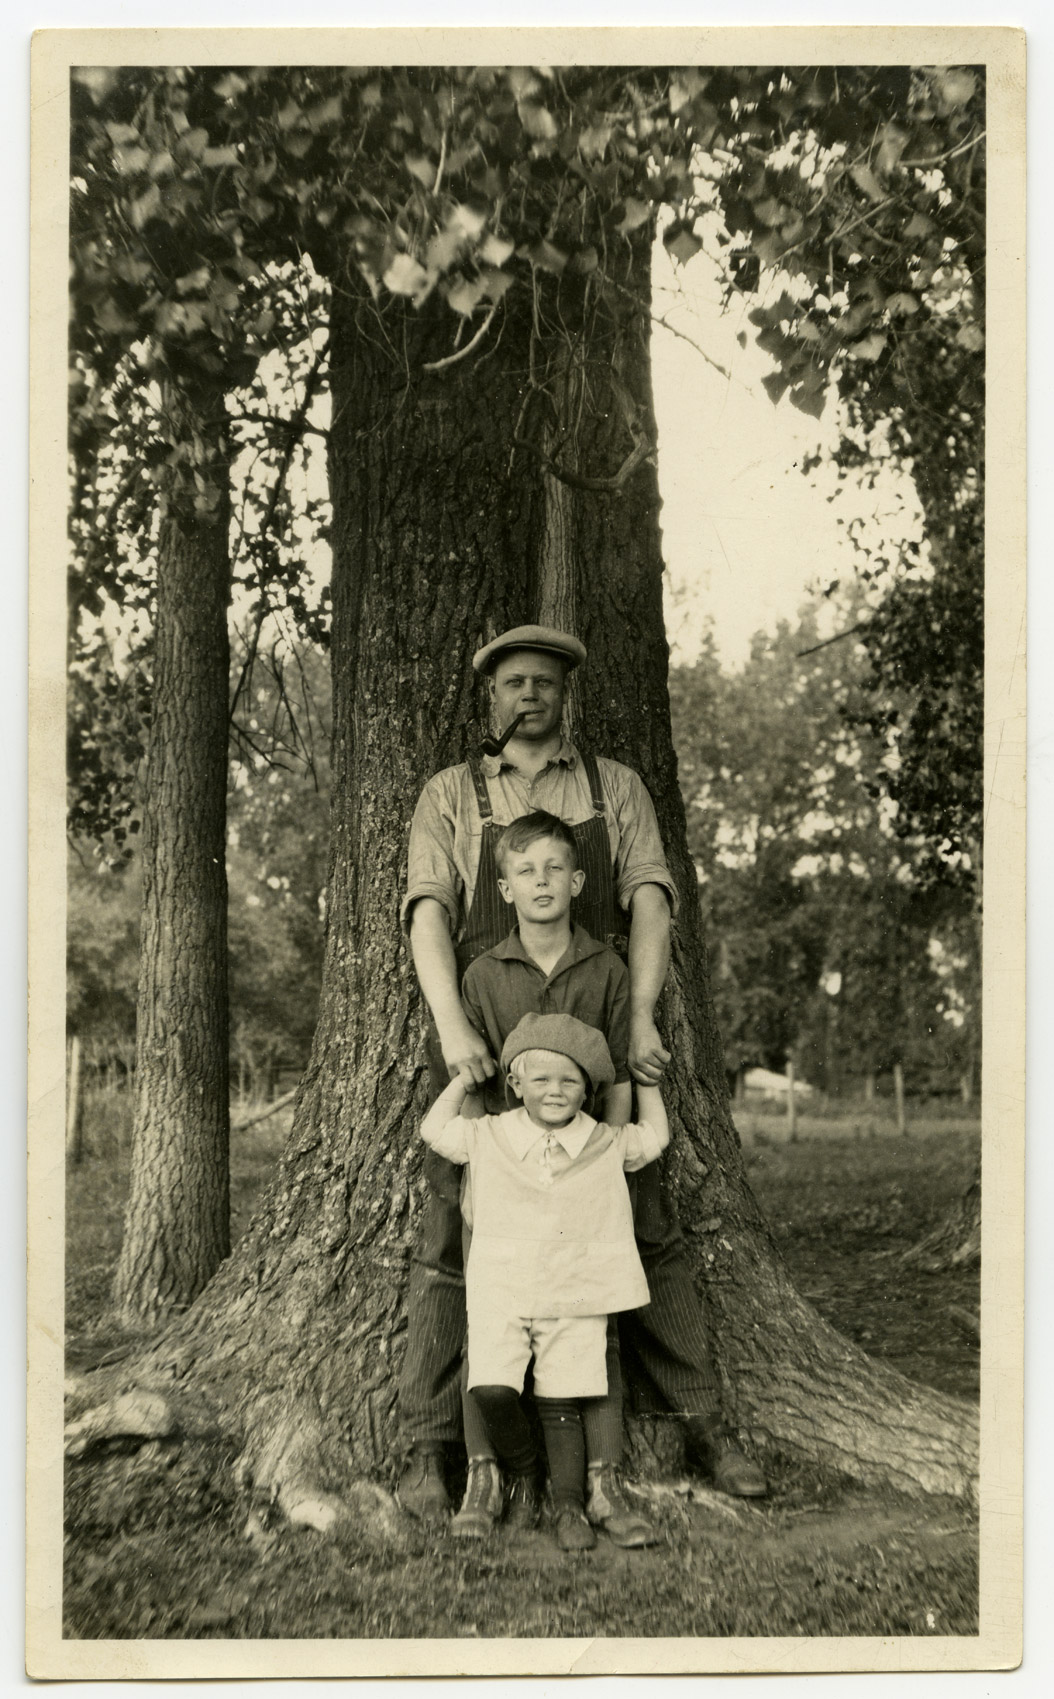 Mr. Wold's son, A. N. Wold and his two sons